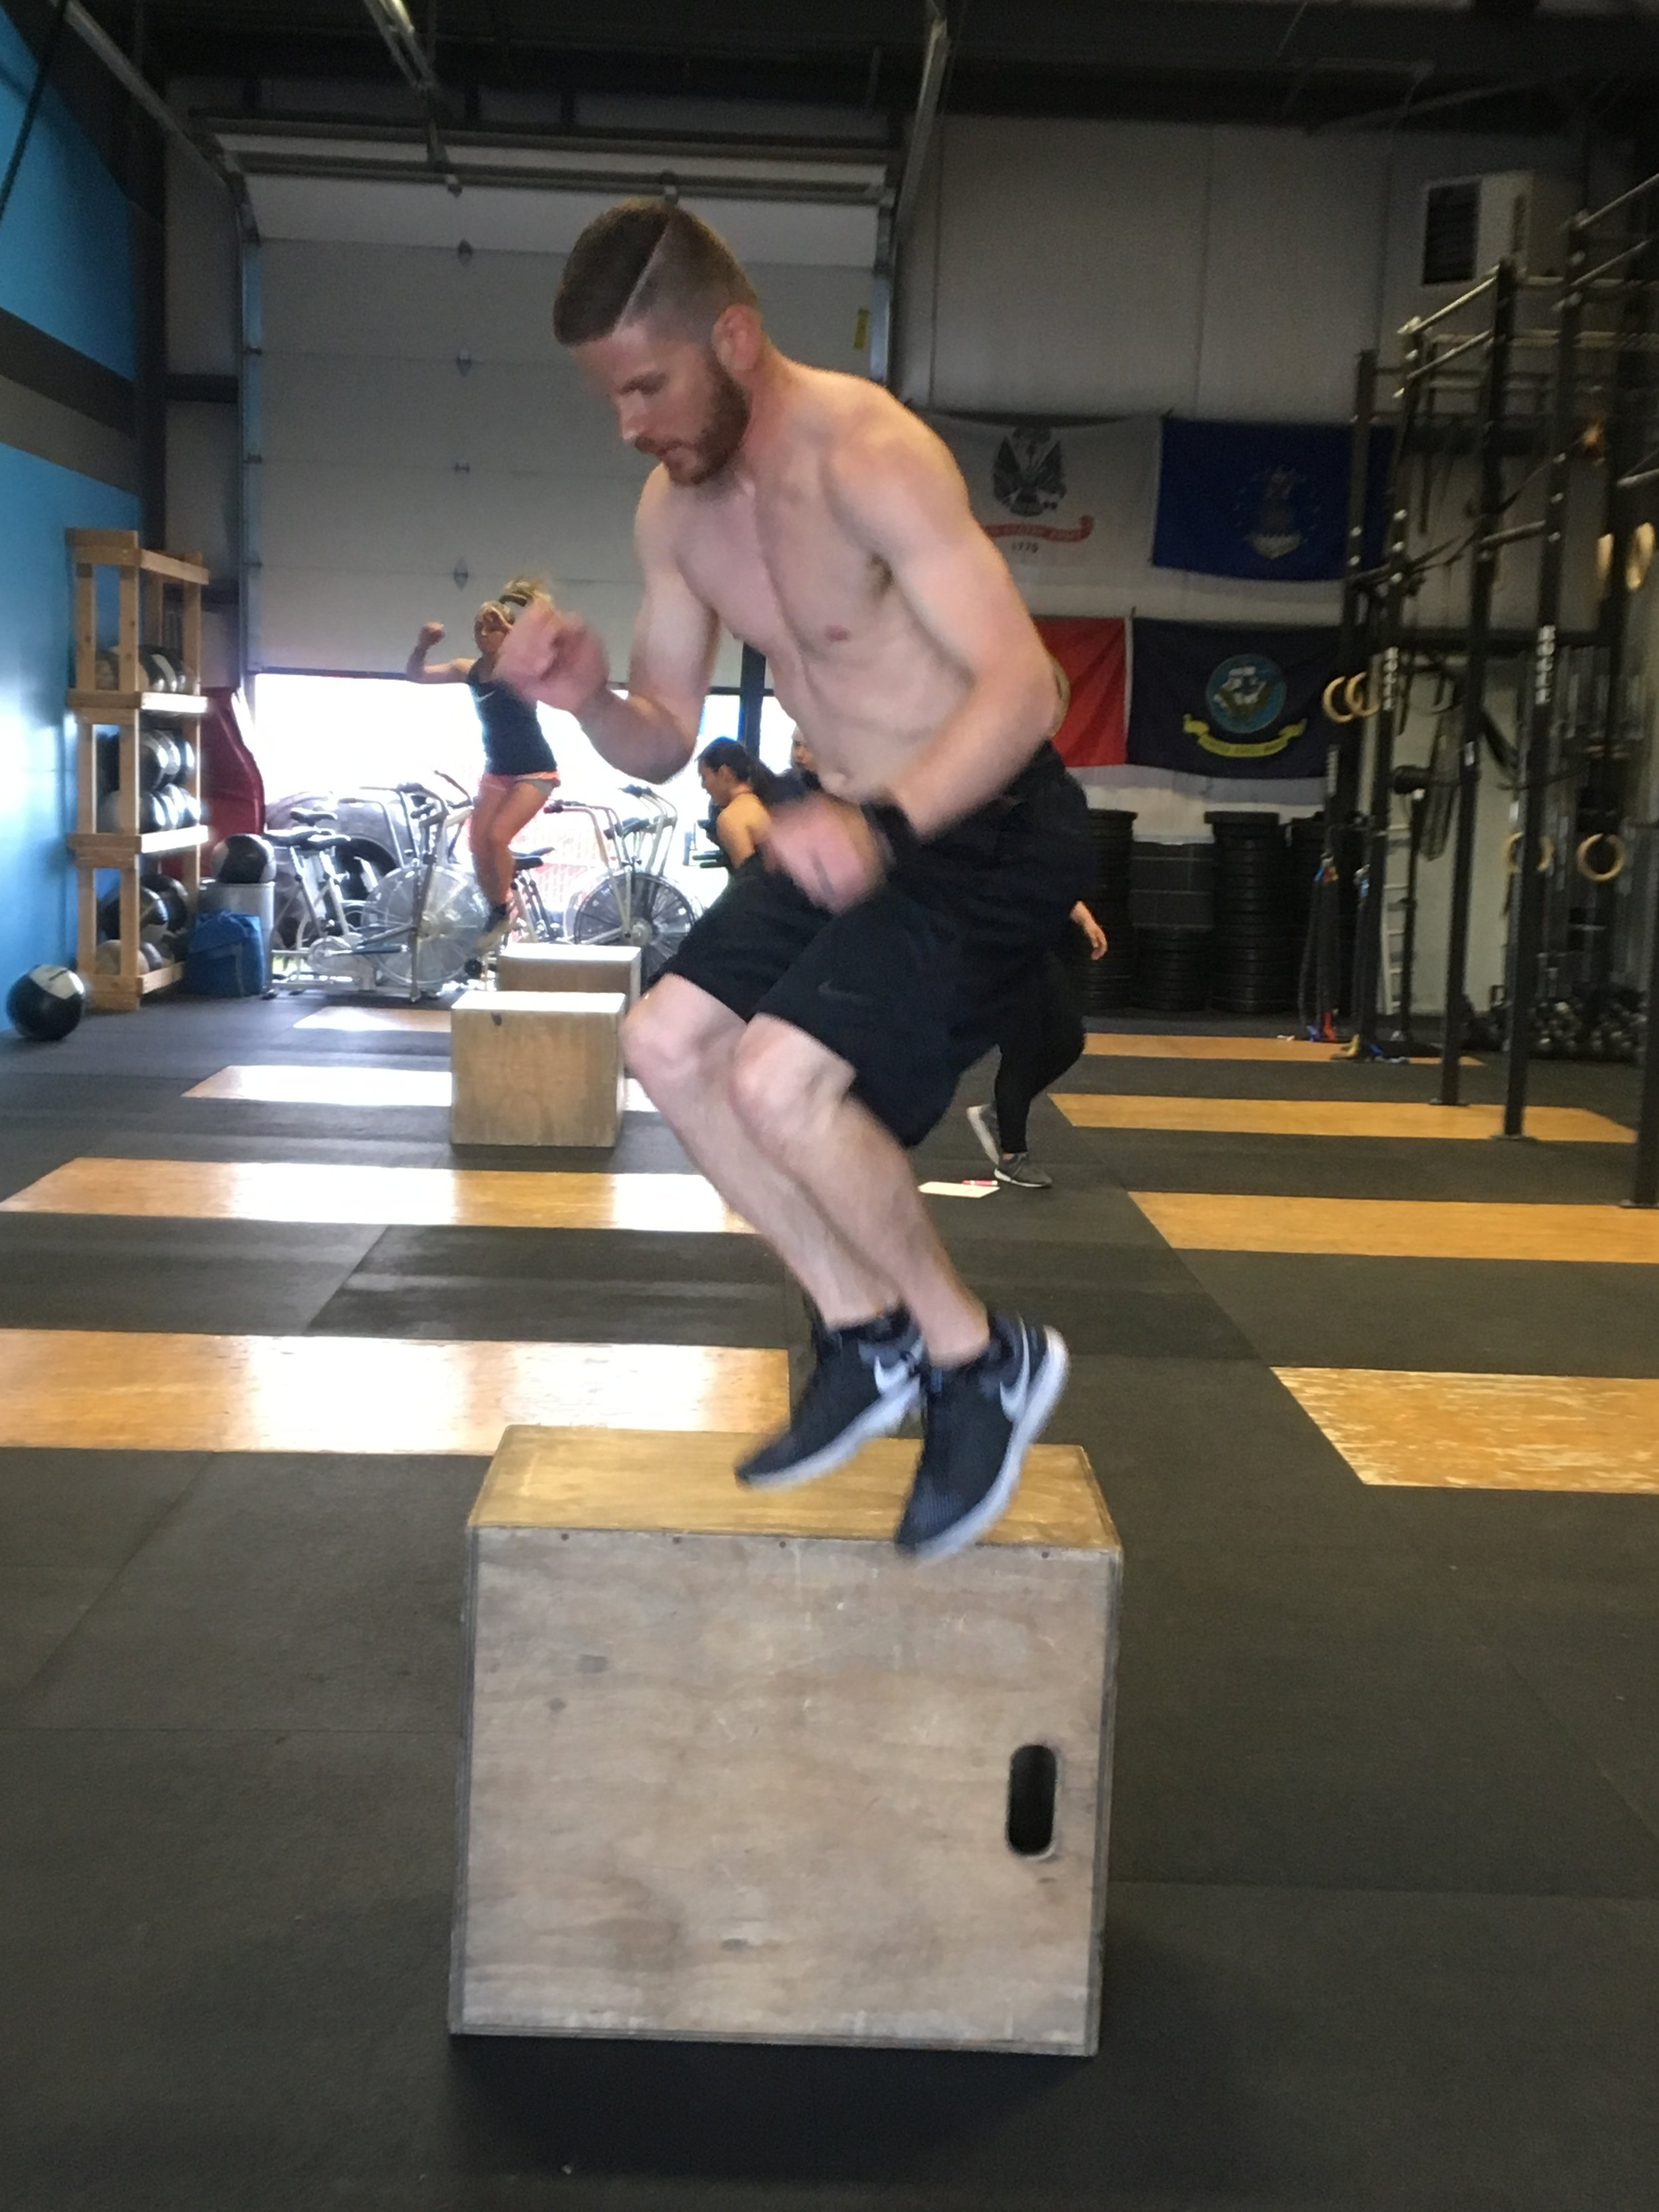 Mike aka Money Mike gettin' it on those Box Jumps!